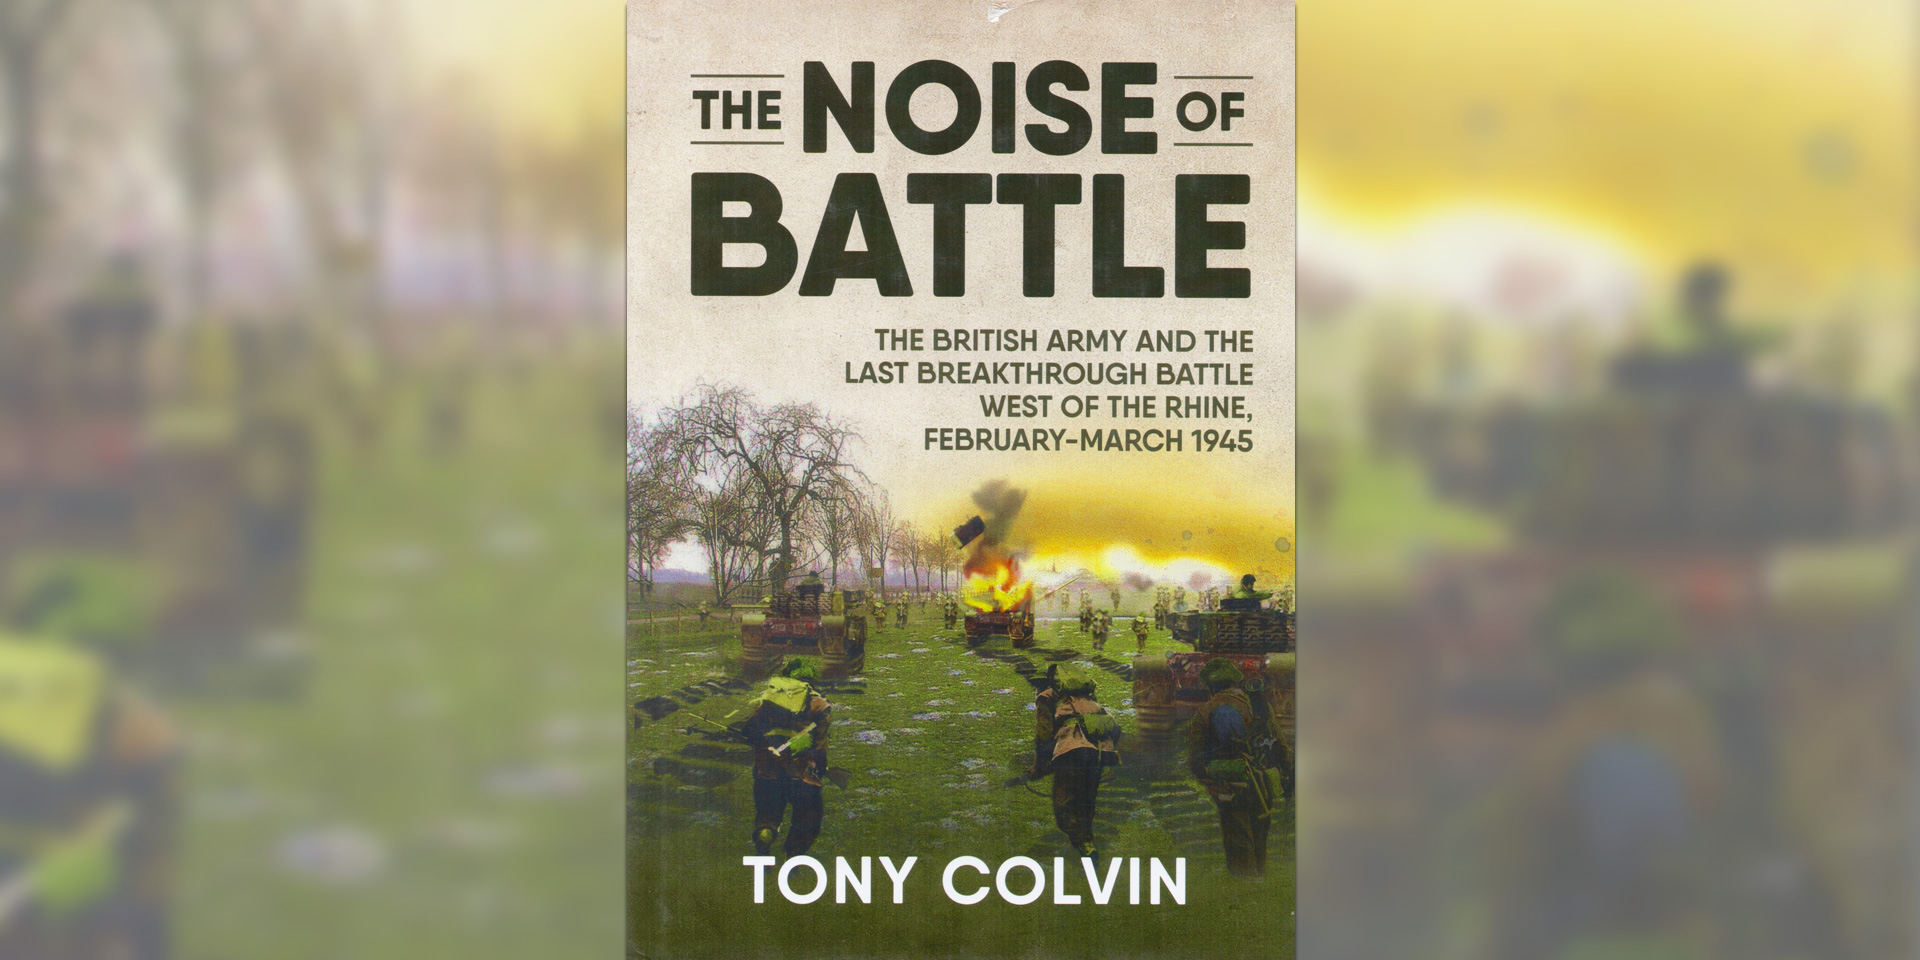 'The Noise of Battle' book cover